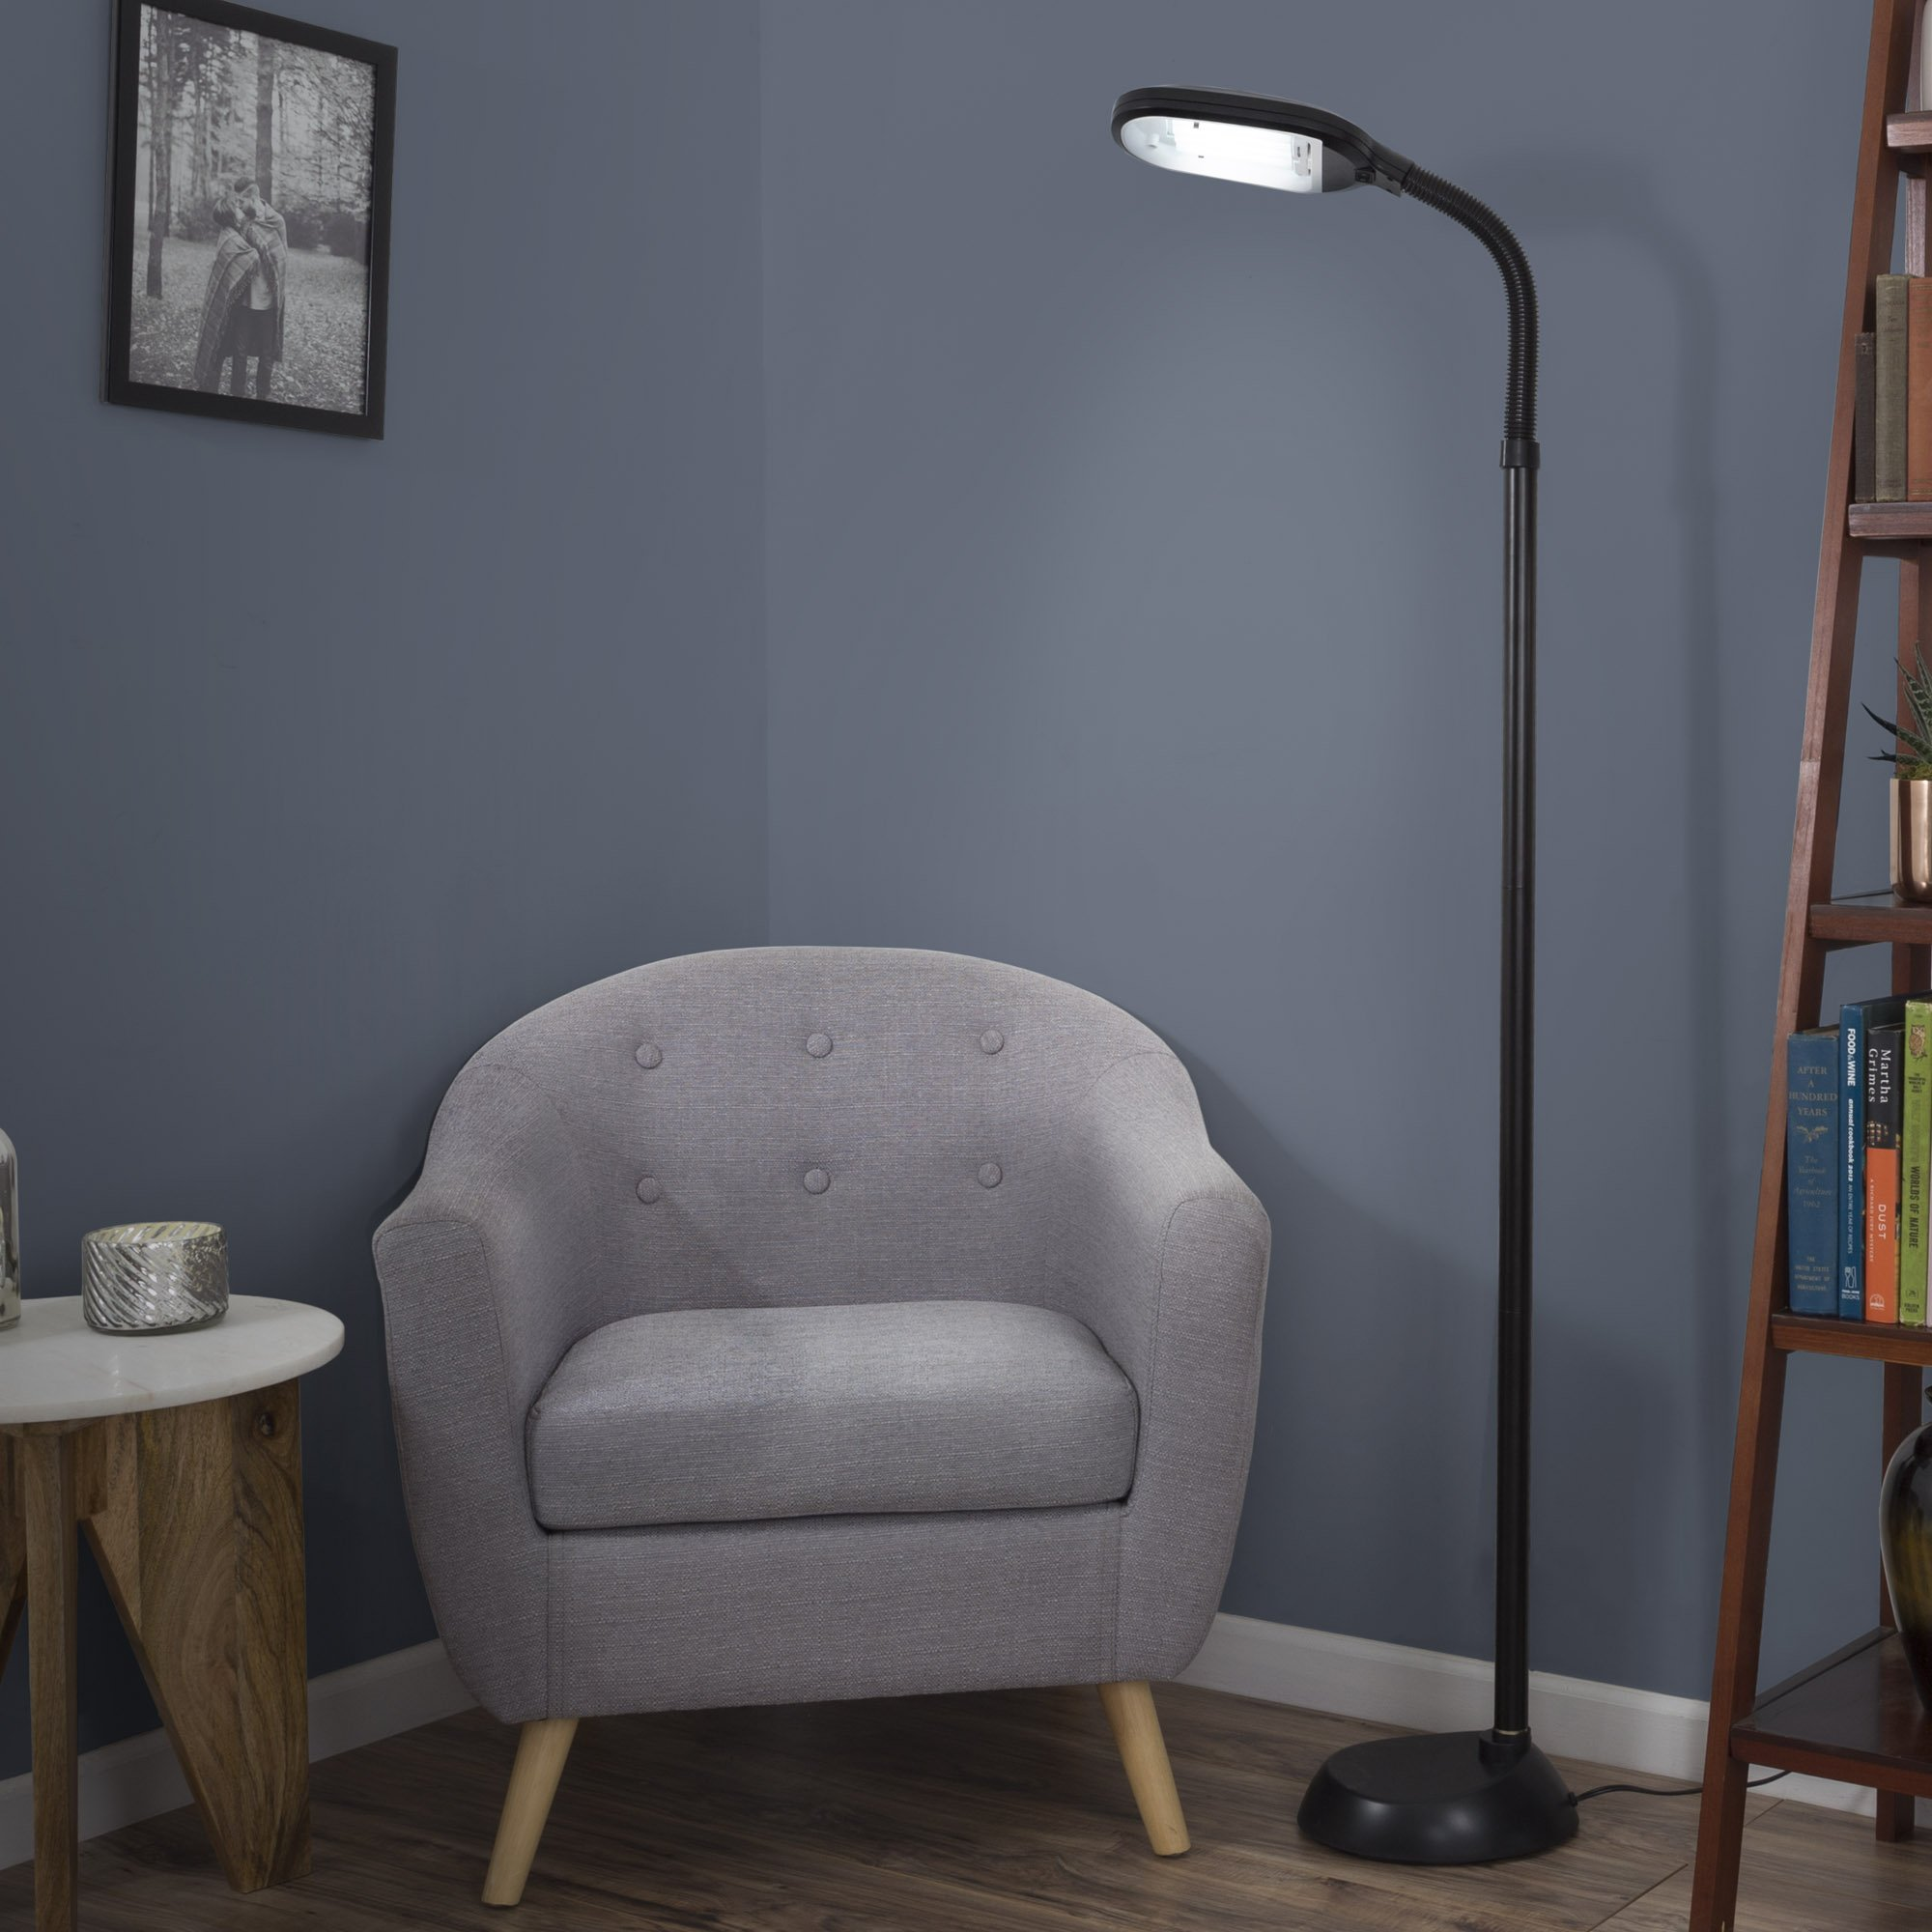 Lavish Home (72-0890) 5 Feet Sunlight Floor Lamp With Adjustable Gooseneck - Black by Lavish Home (Image #4)